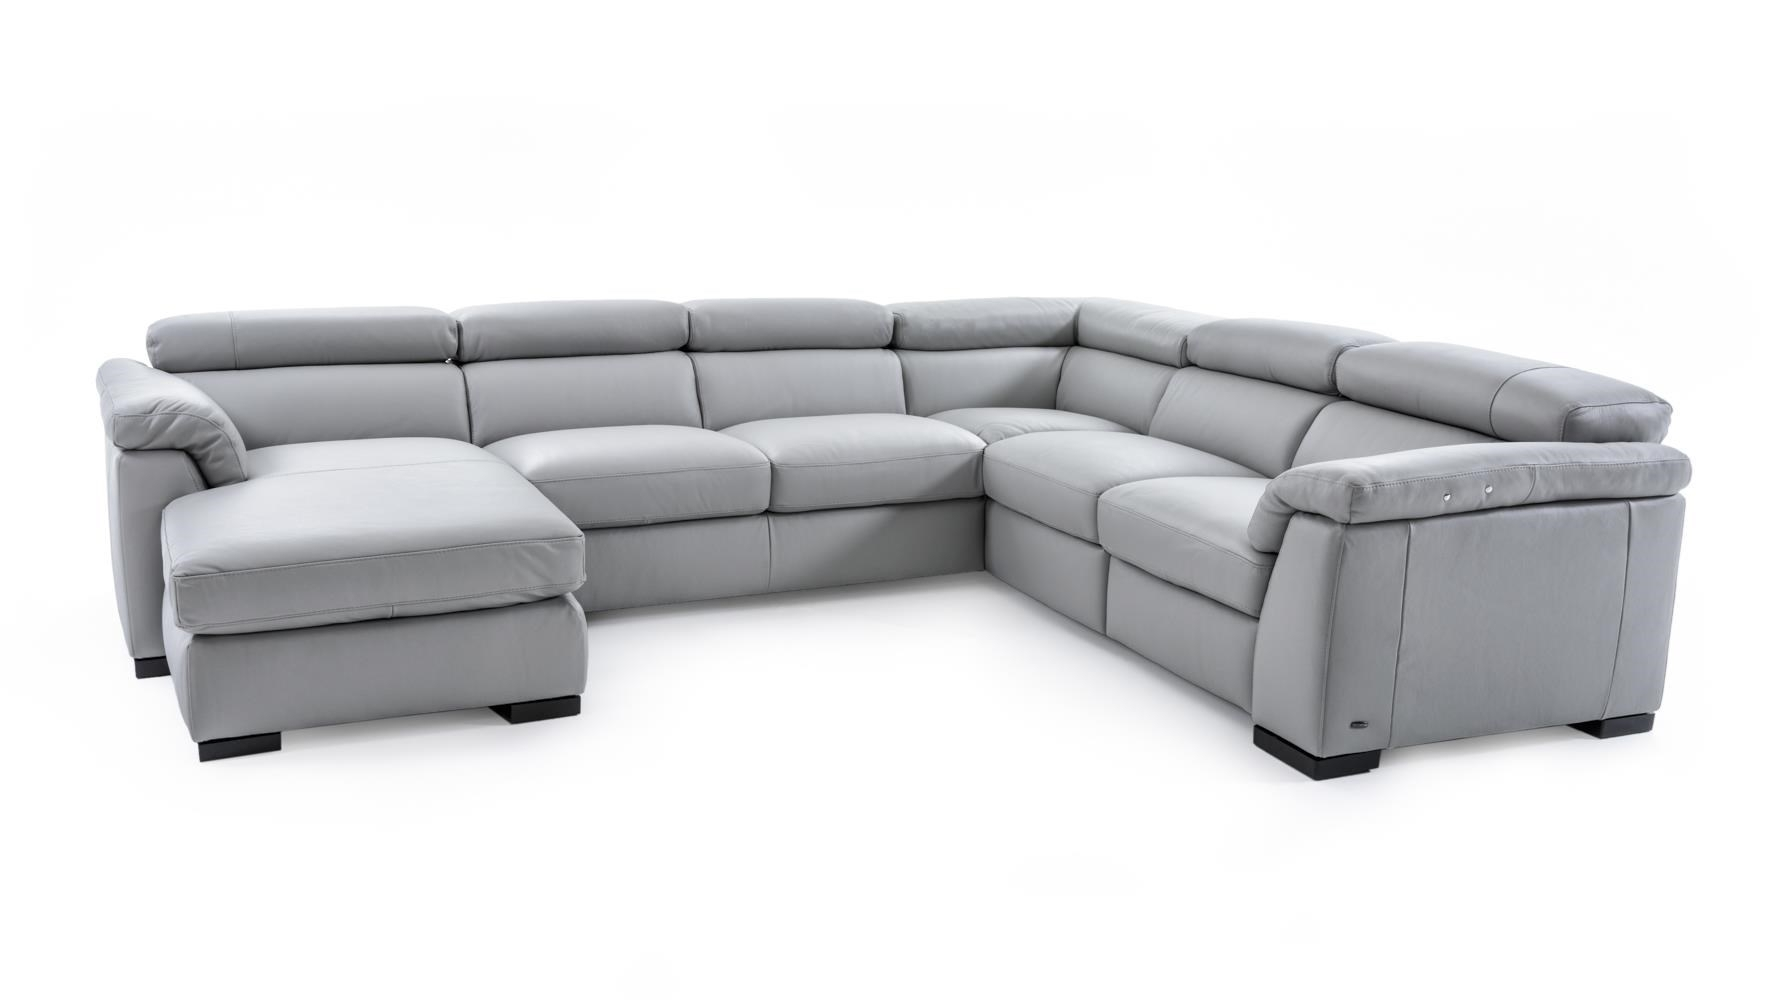 Natuzzi Editions B634 B634 Sect 1 Gray Contemporary Leather With Regard To Natuzzi Sectional Sofas (Photo 5 of 10)